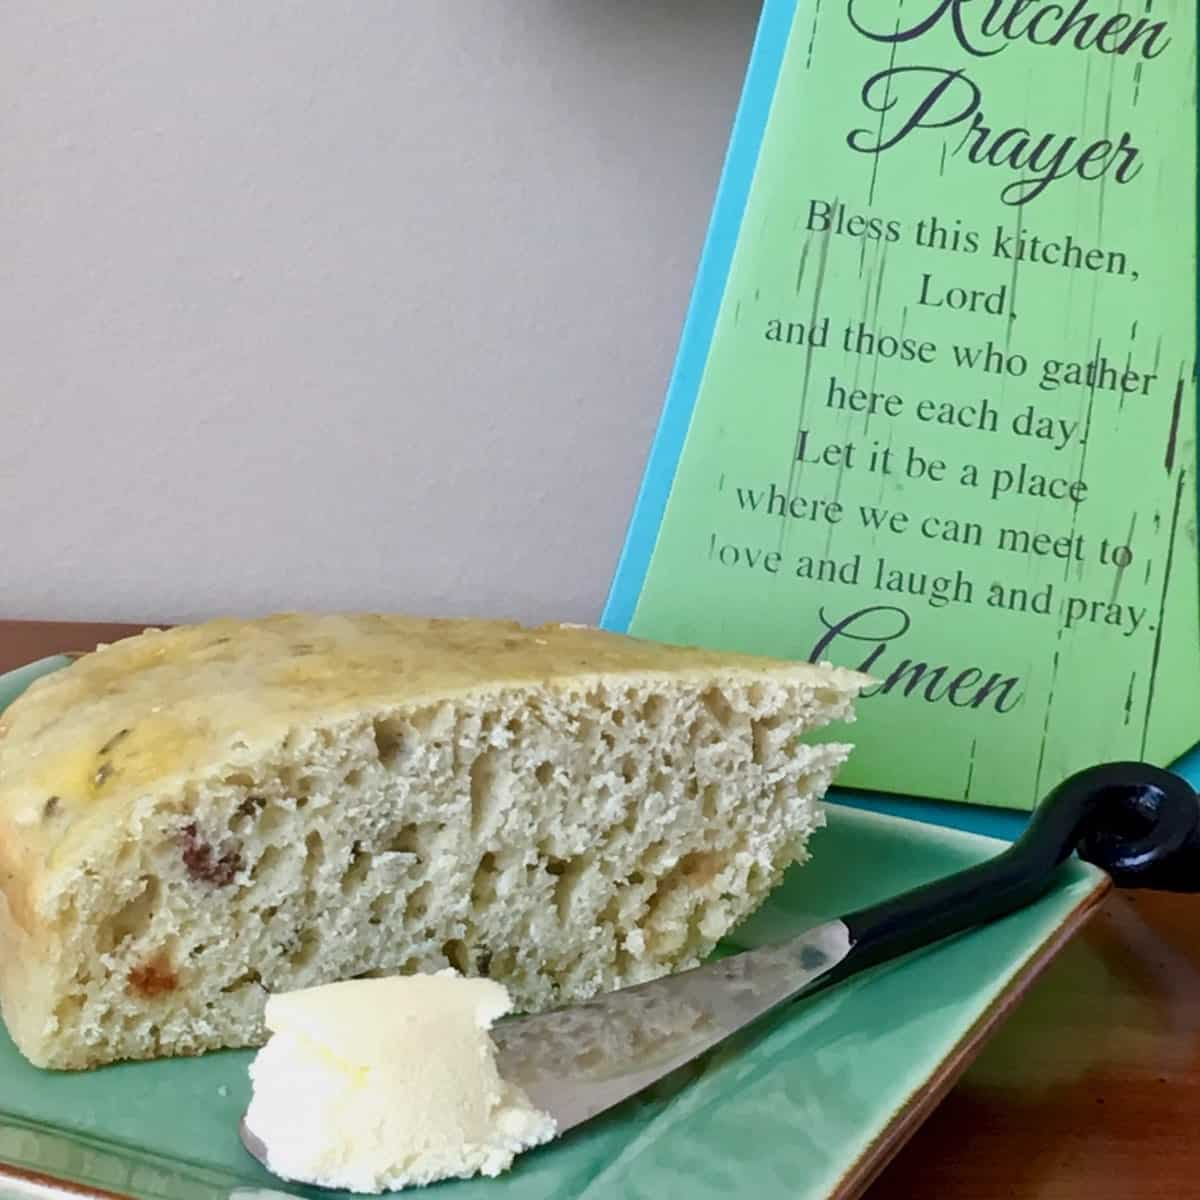 plated Irish soda bread with butter and a kitchen prayer